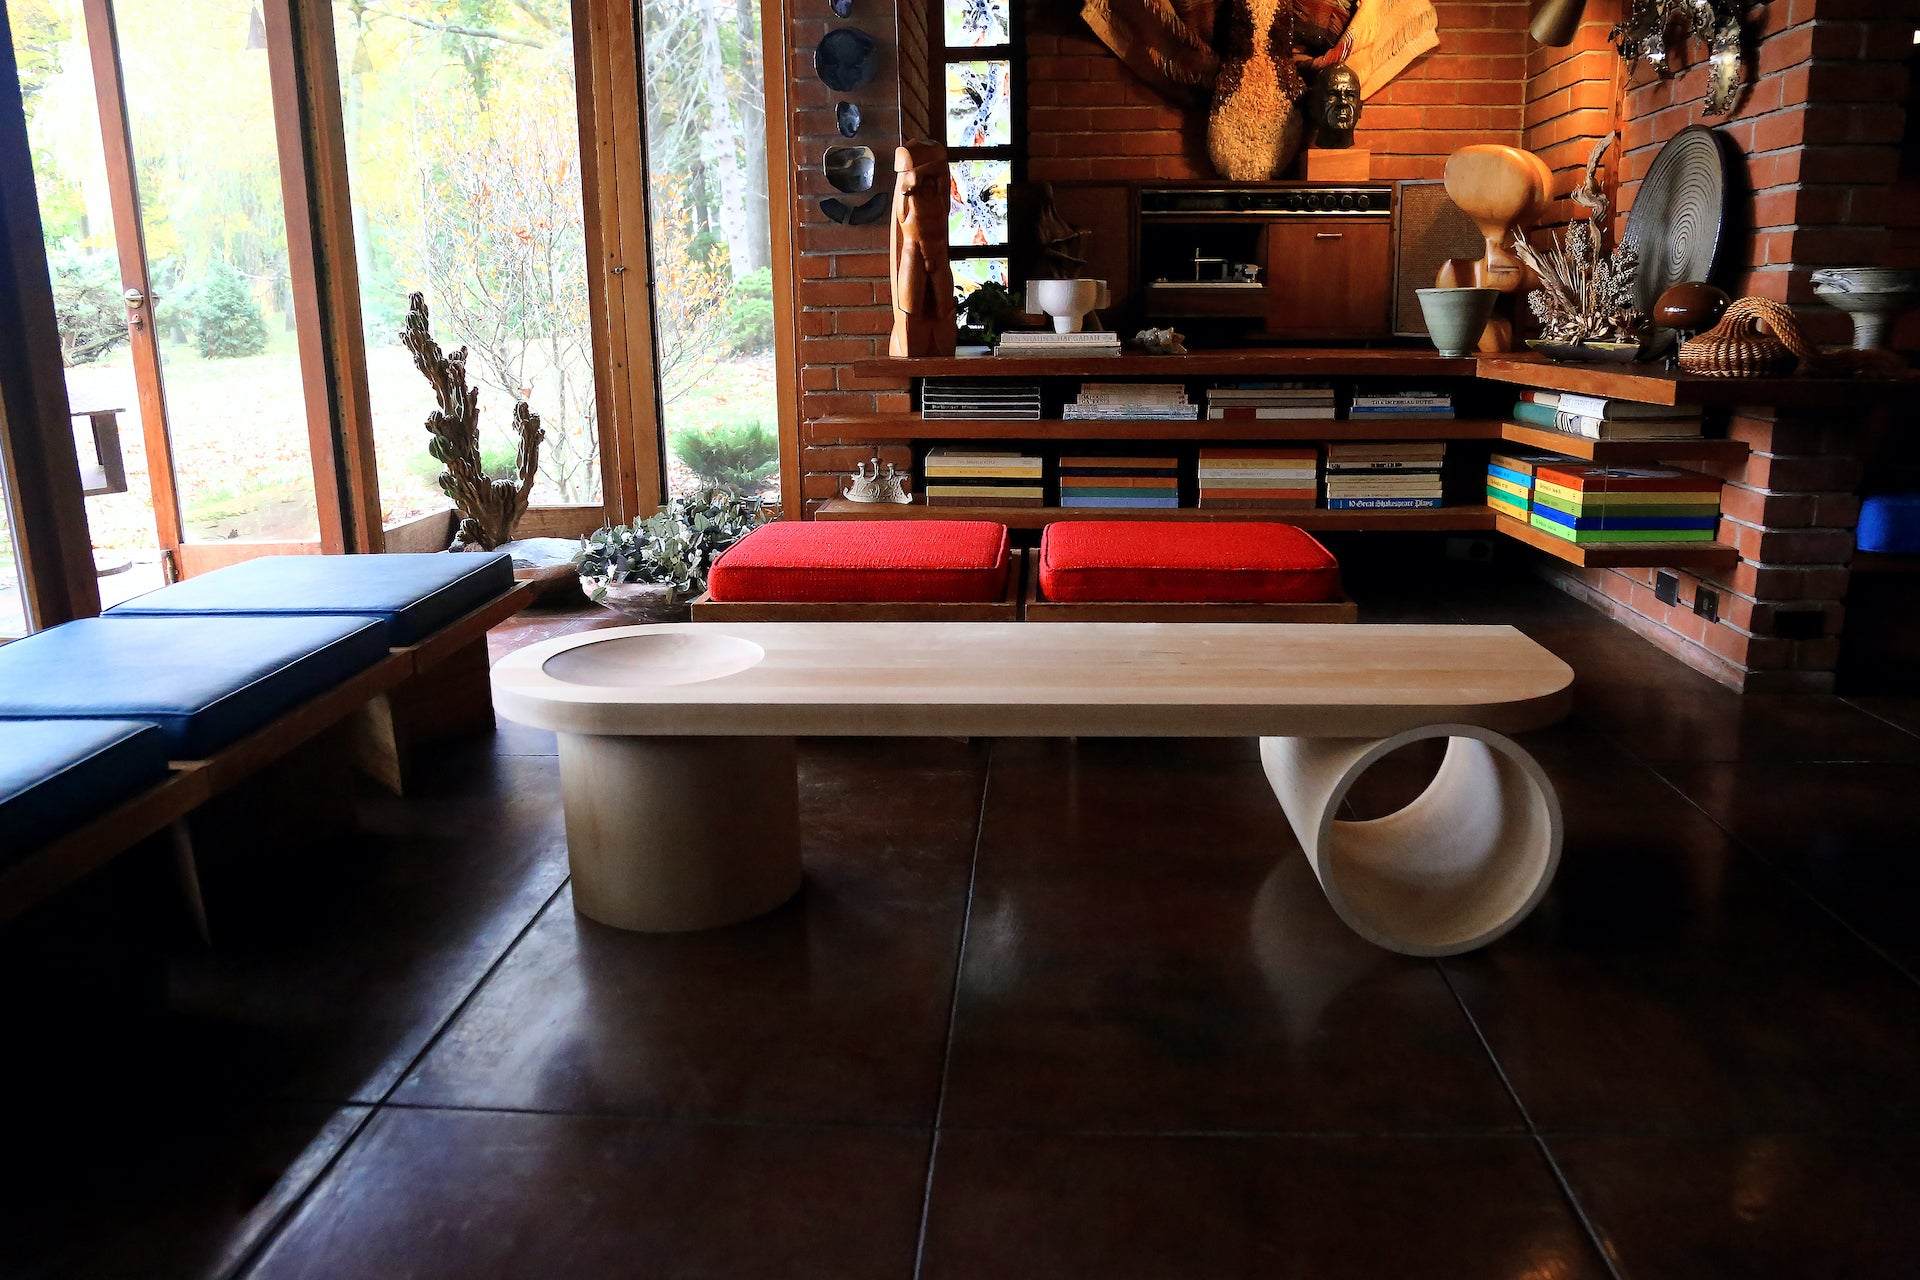 """Cho's new Recess Table. """"This photo was photographed with permission in the Frank Lloyd Wright-designed Smith House in Bloomfield Hills, Michigan,"""" Cho says. """"The house is operated by Cranbrook Center for Collections and Research."""" Photo © Rare JK; Courtesy of Nina Cho"""